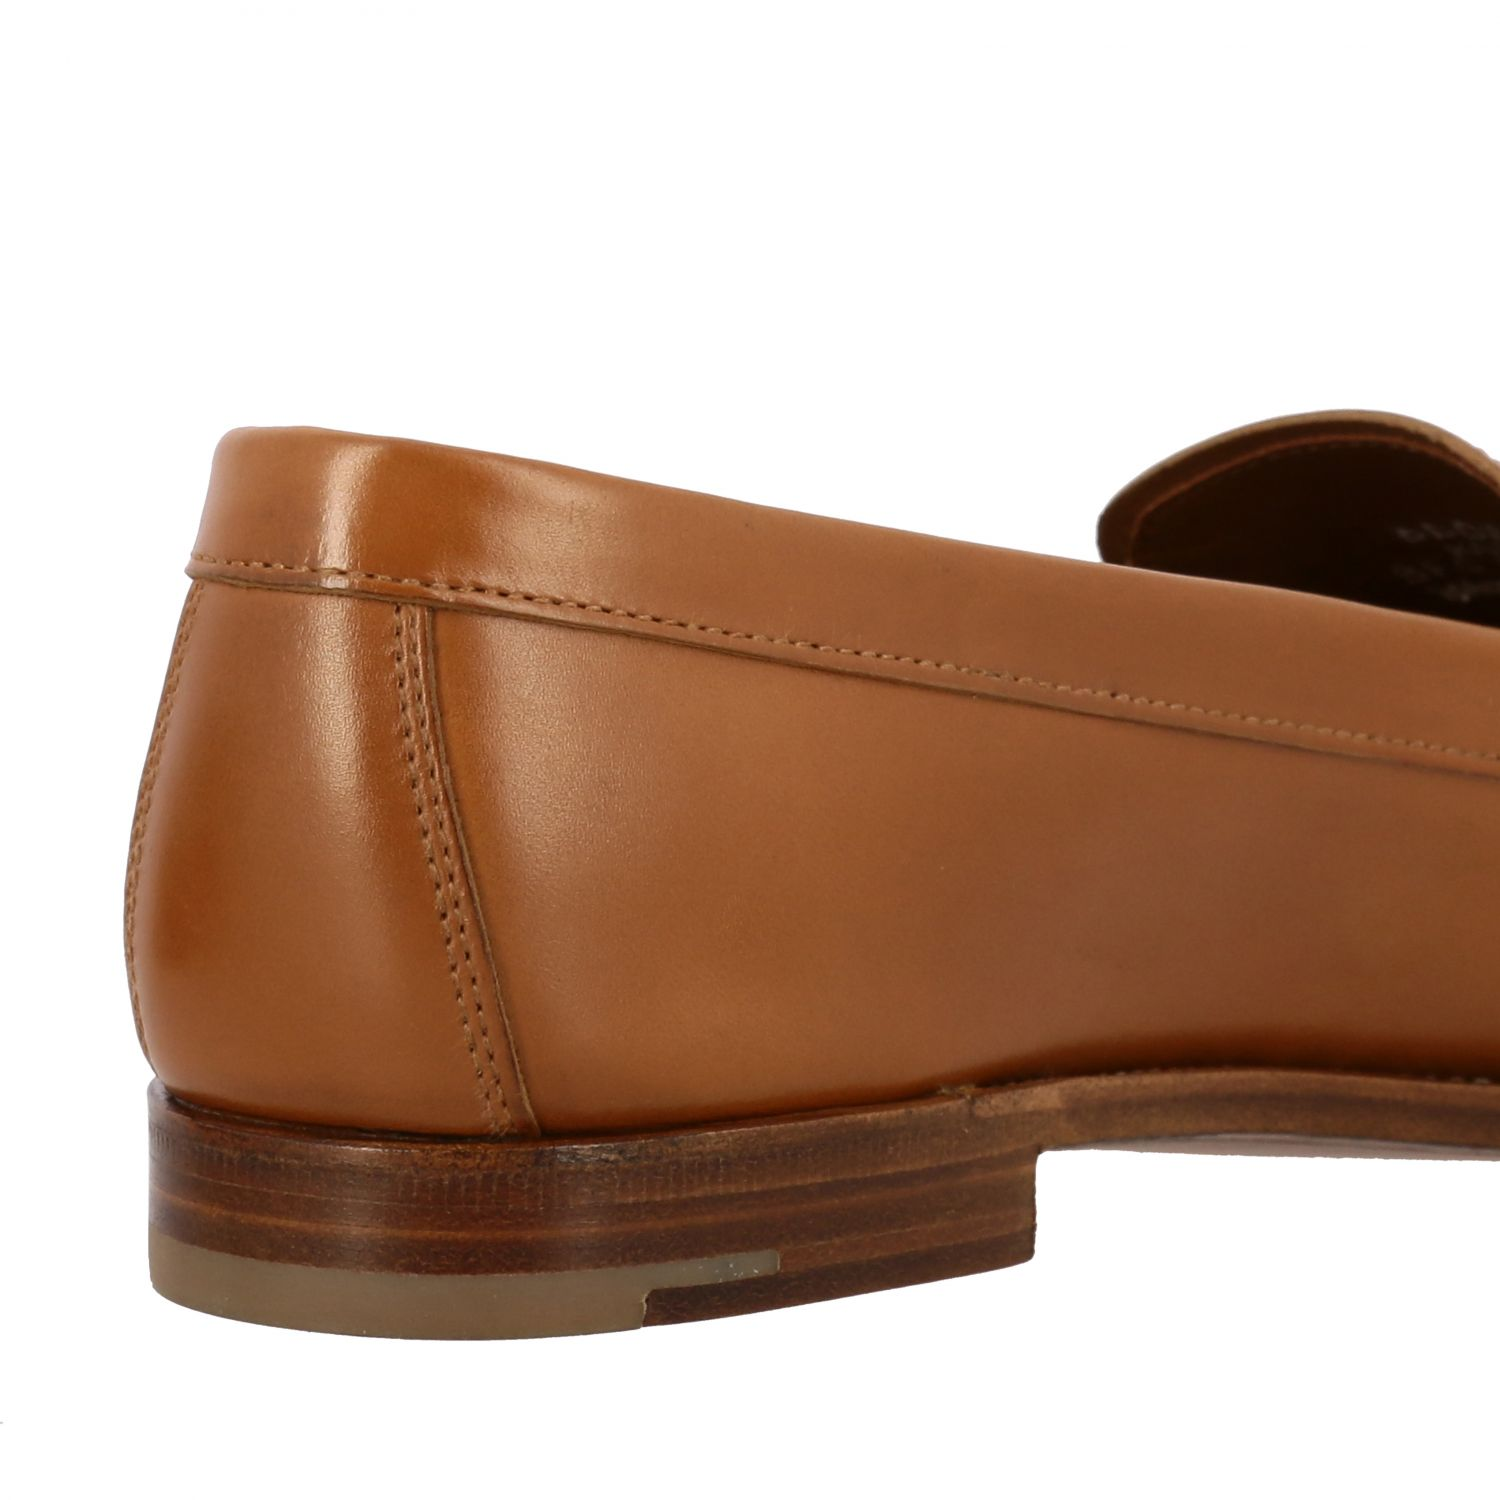 Loafers Church's: Shoes women Church's leather 5